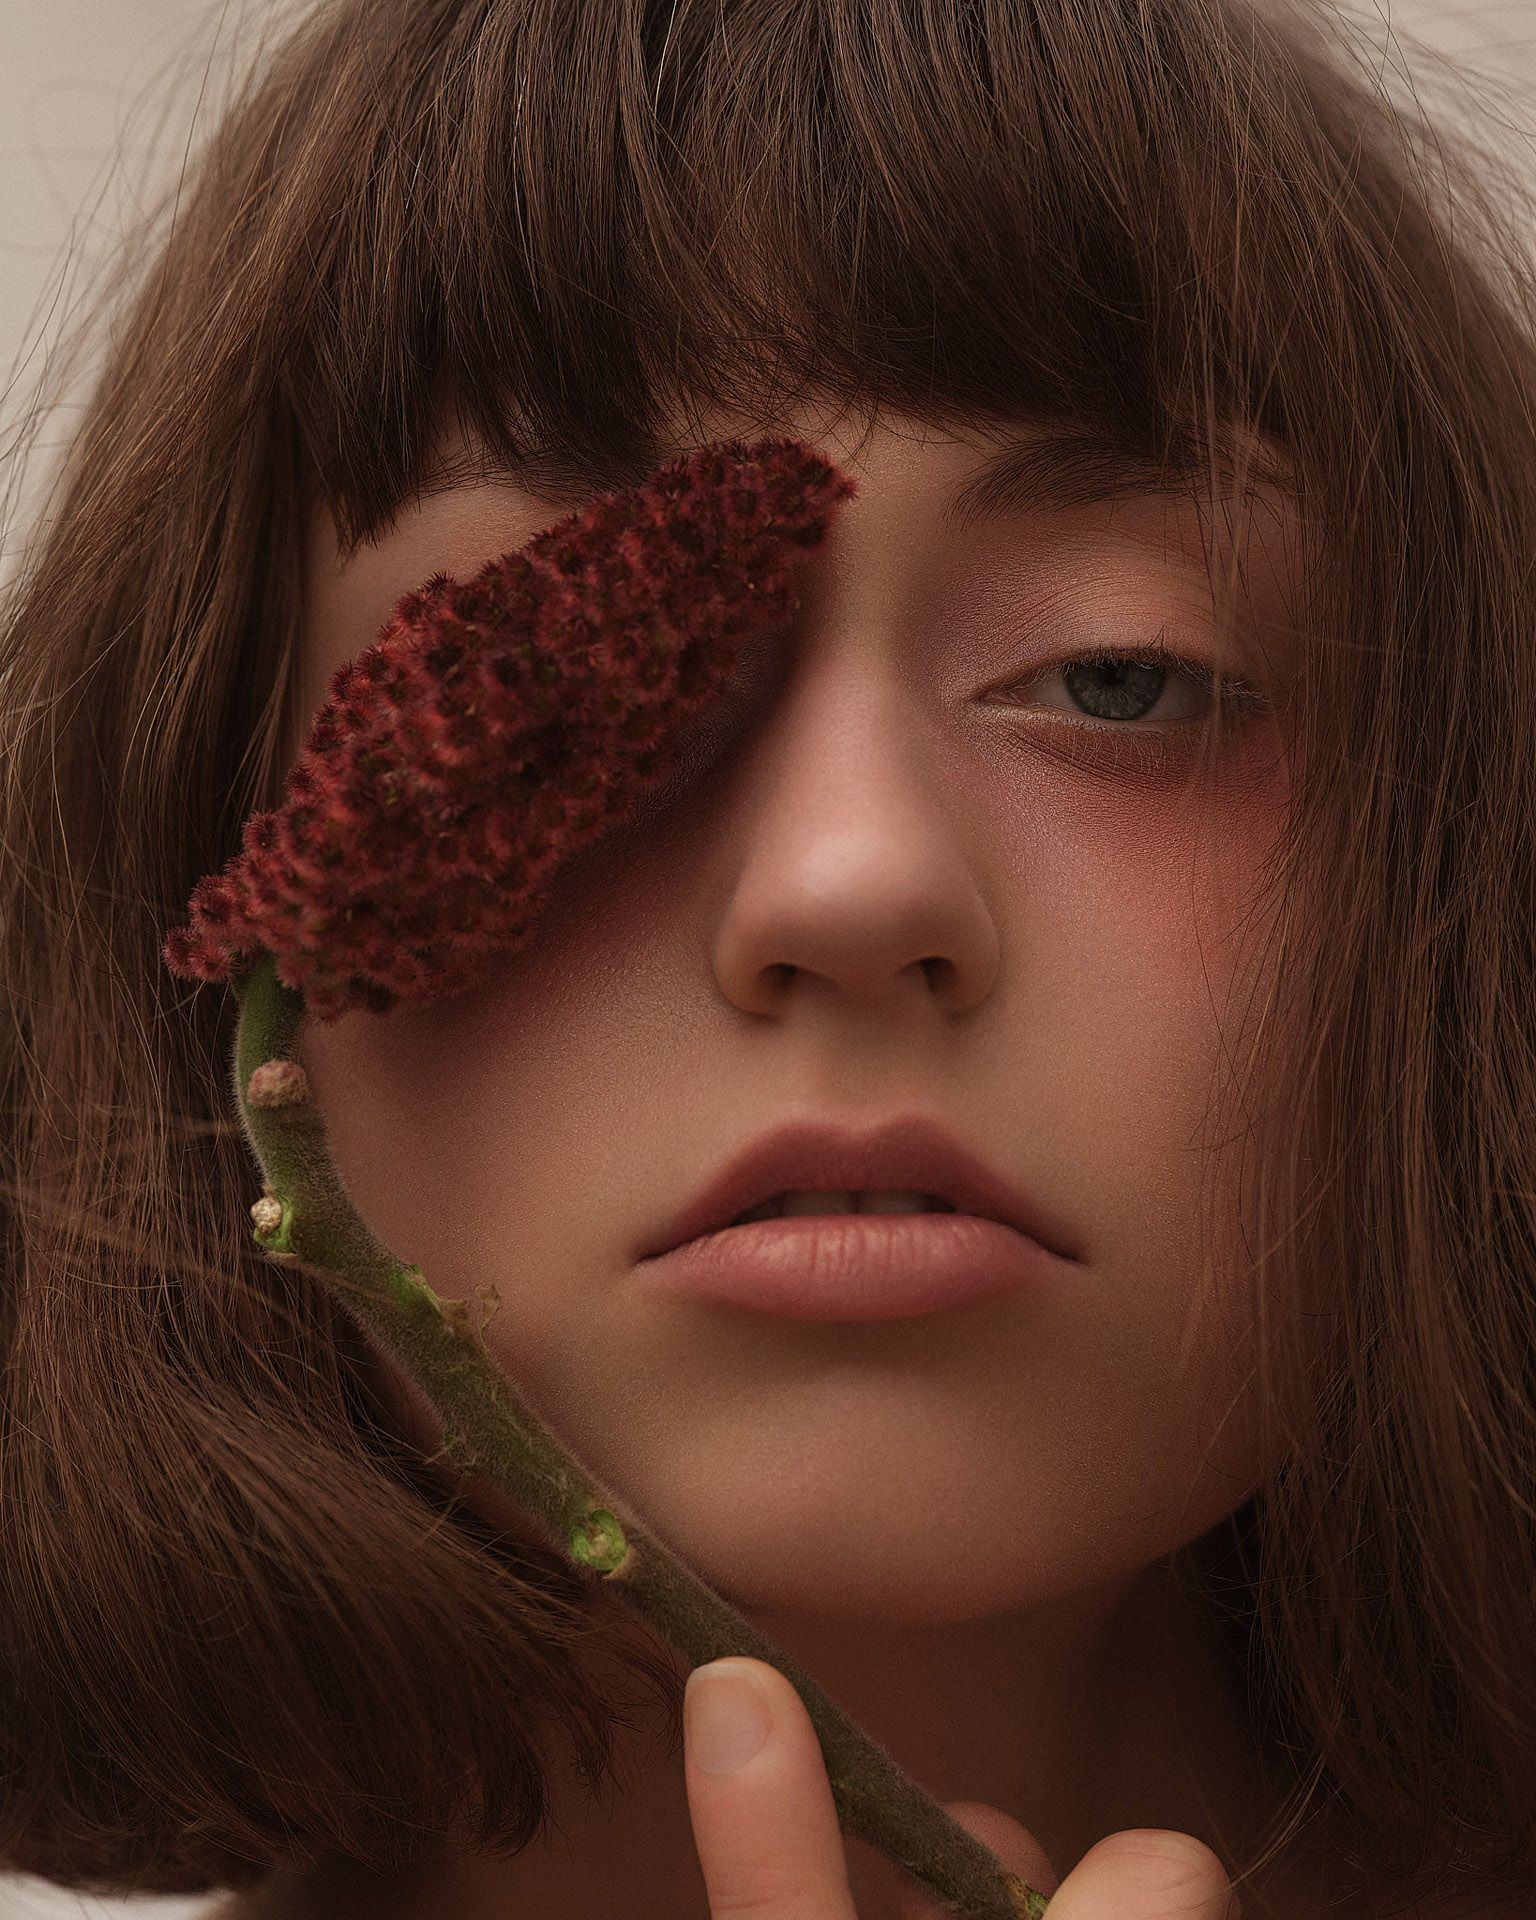 model Delphine with pink eyeshadow with fluffy plant over her eye by Maxyme G Delisle for Flanelle Magazine